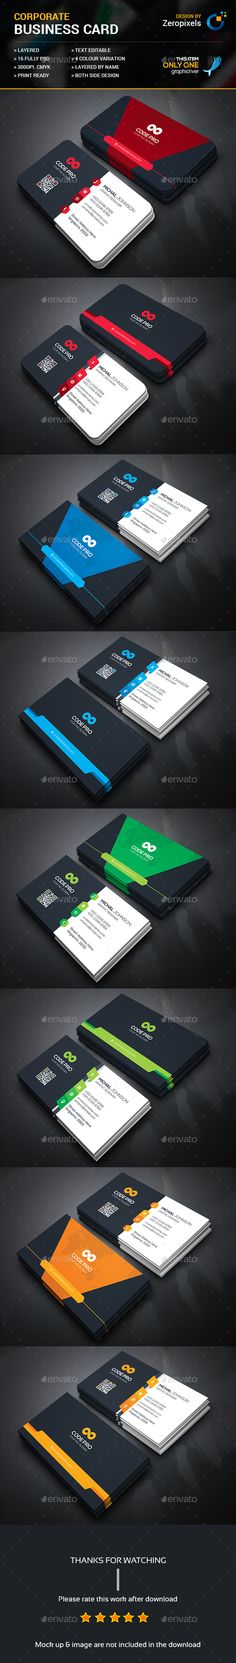 Rent a car business card psd template download business corporate business card templates psd bundle wajeb